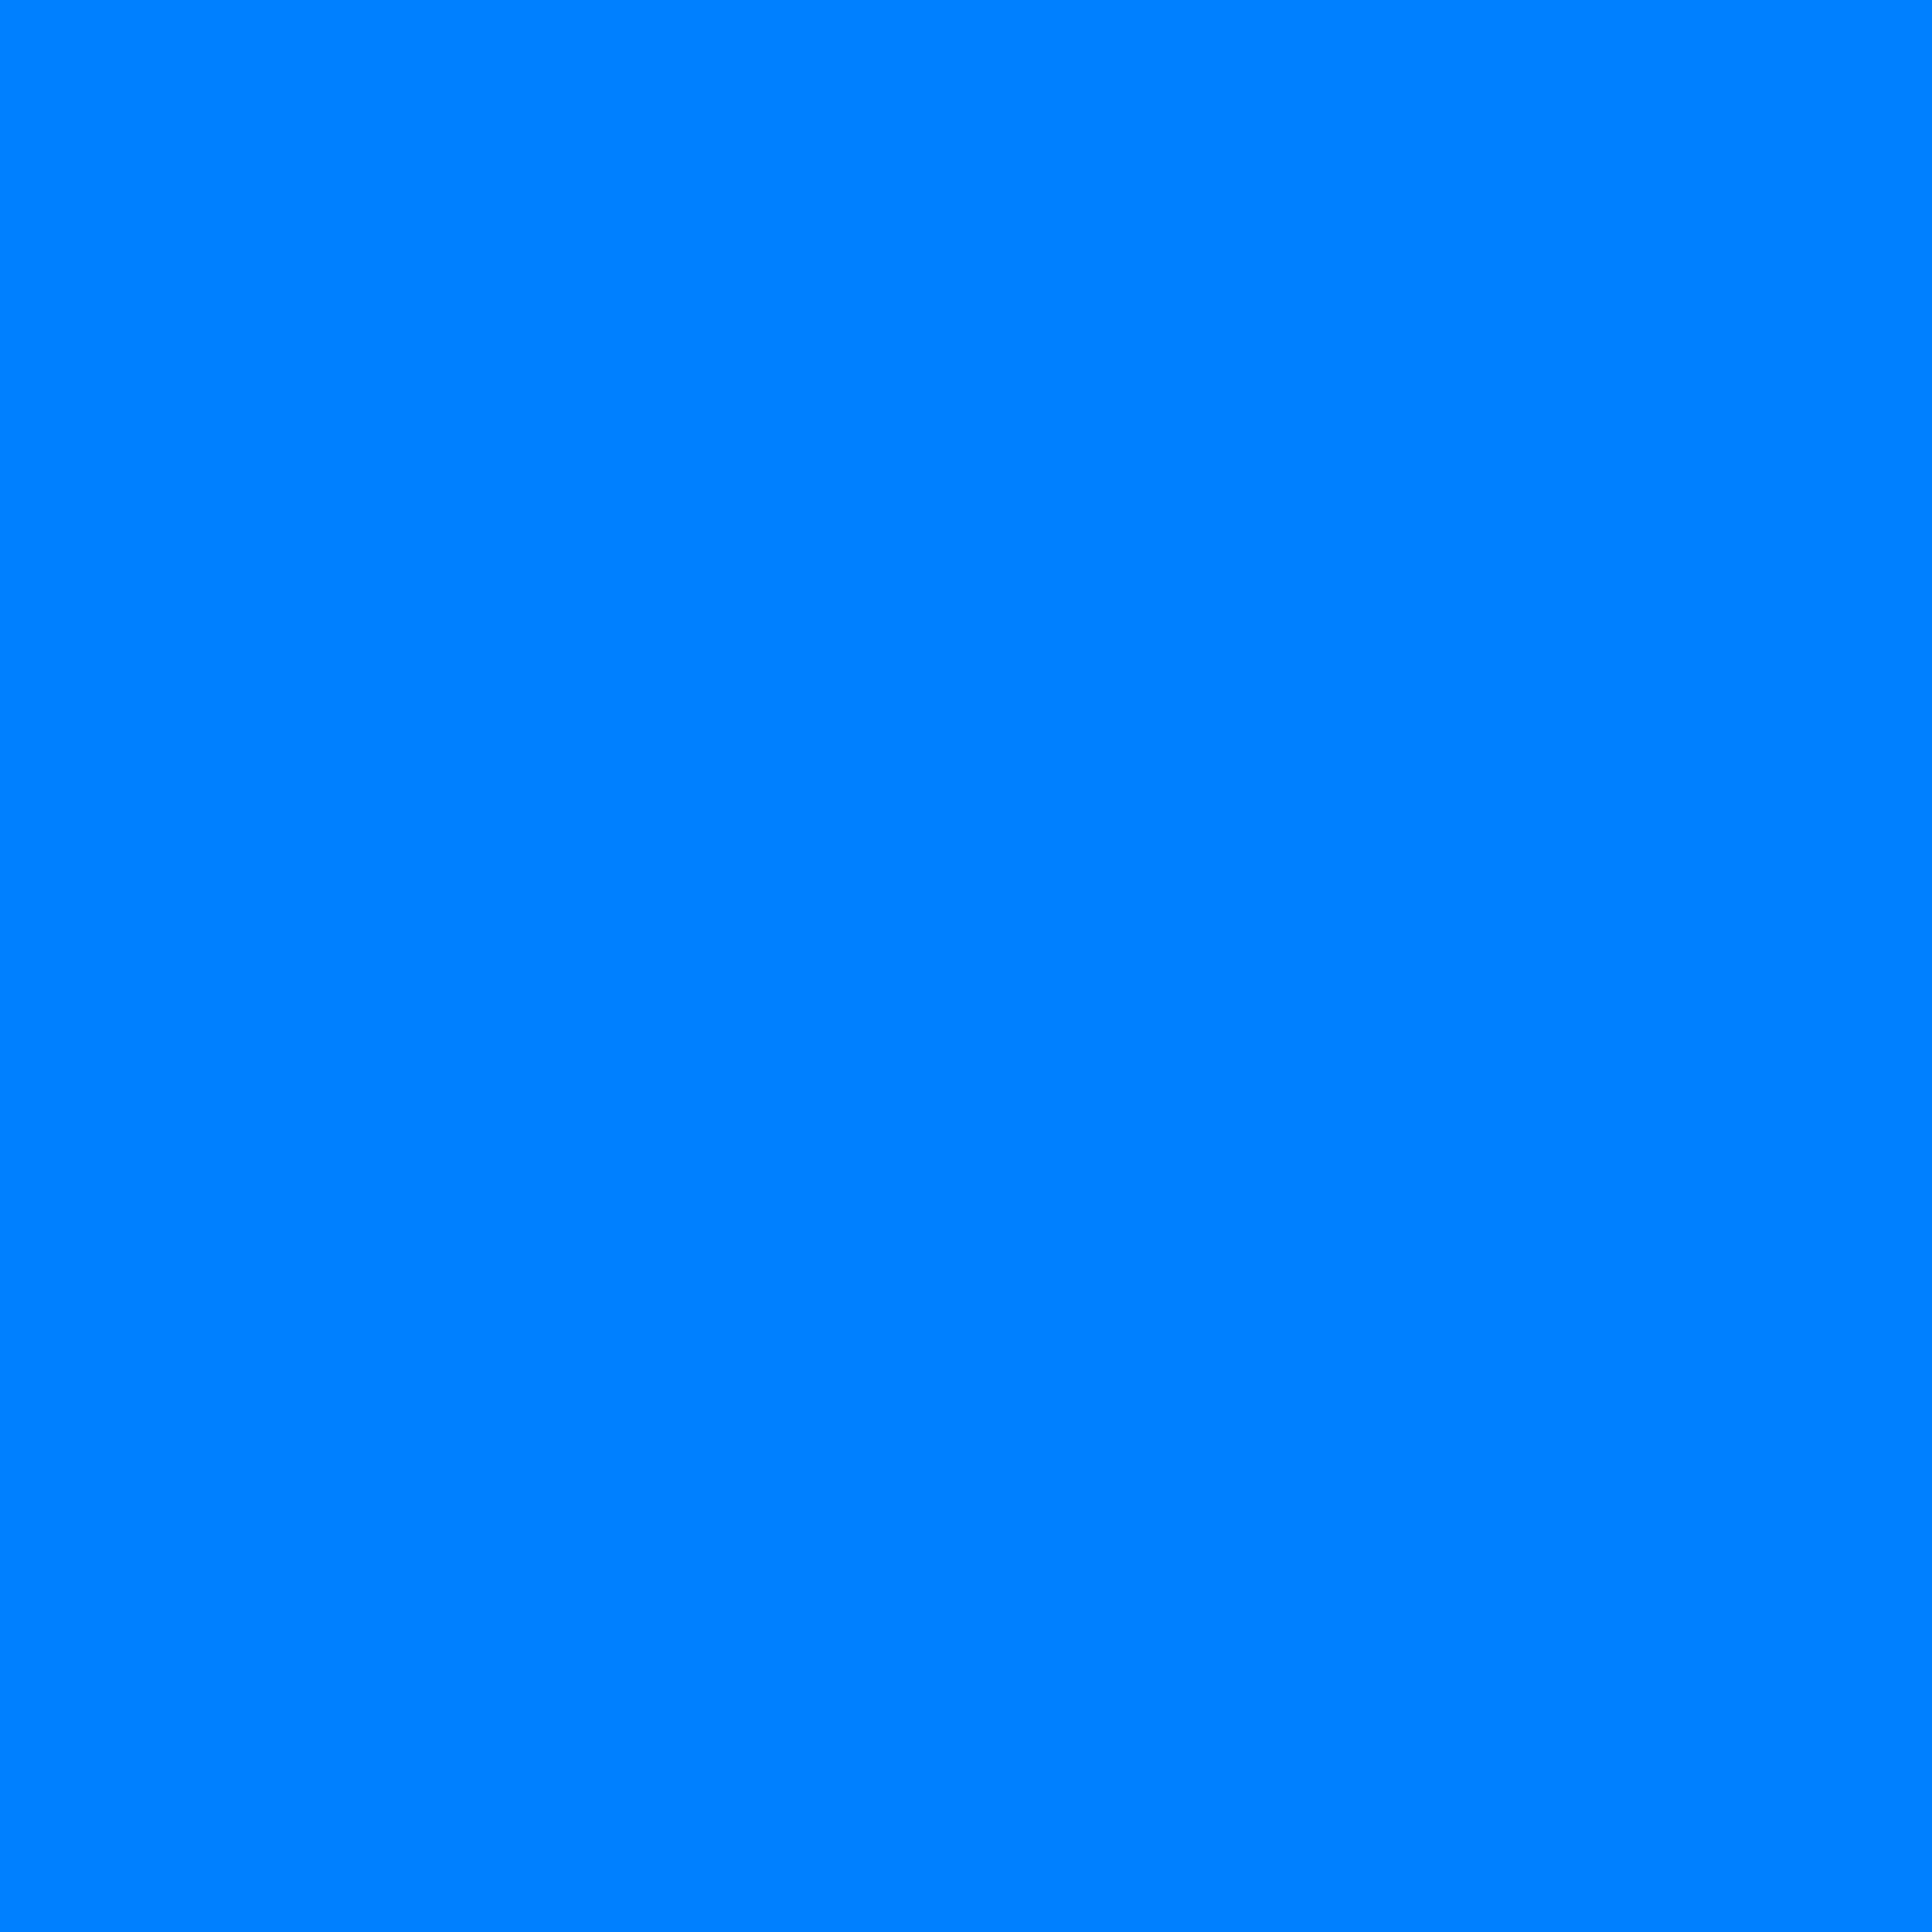 2732x2732 Azure Solid Color Background